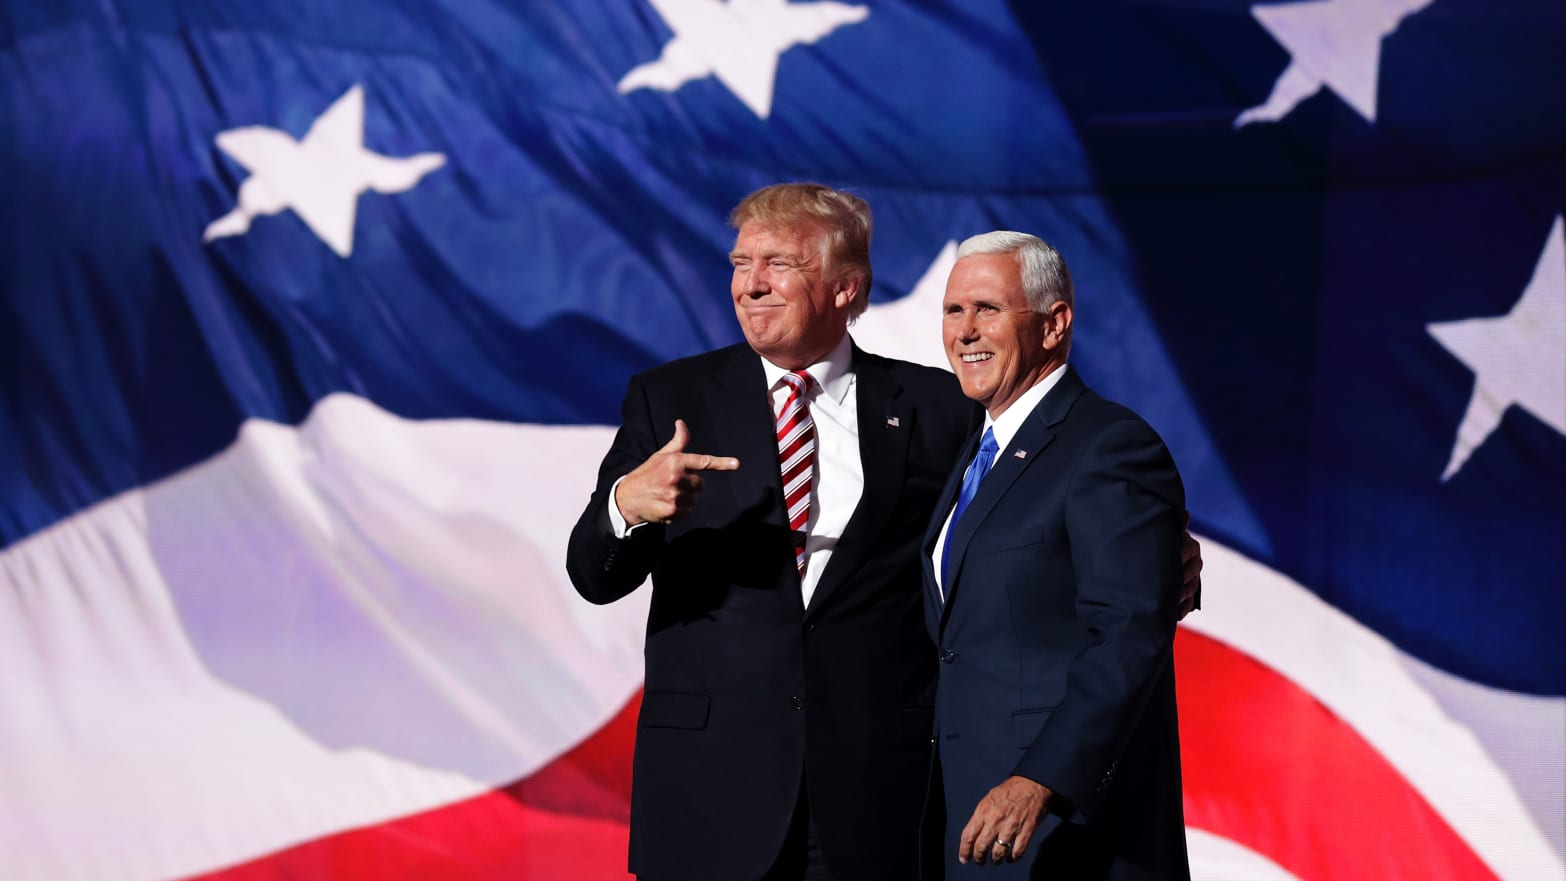 We Always Knew Mike Pence Was Irrelevant, and Now We Know He's Corrupt, Too